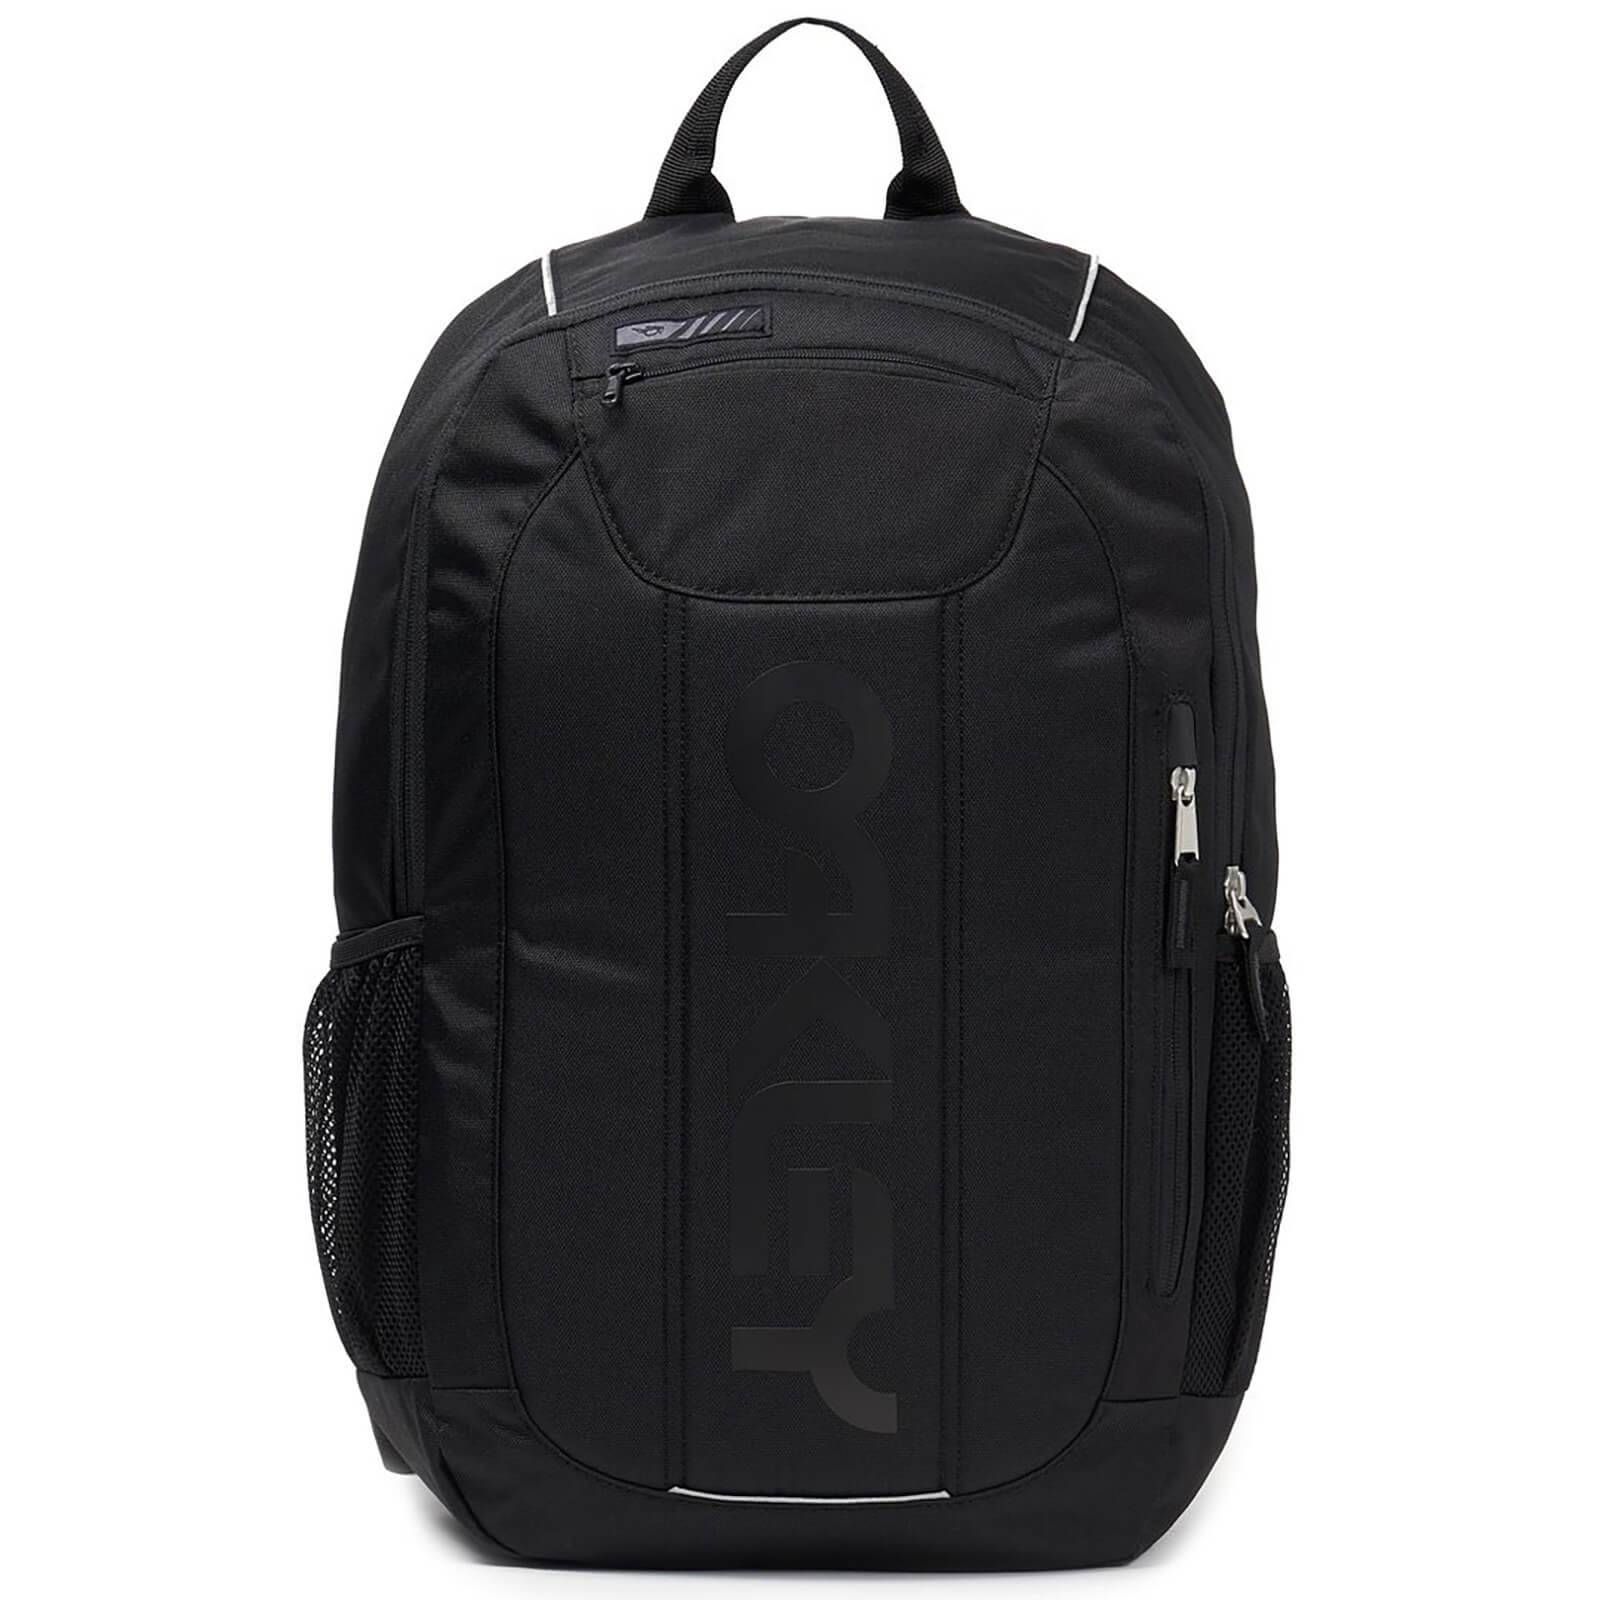 Oakley Enduro 2.0 Backpack - Blackout - 20L